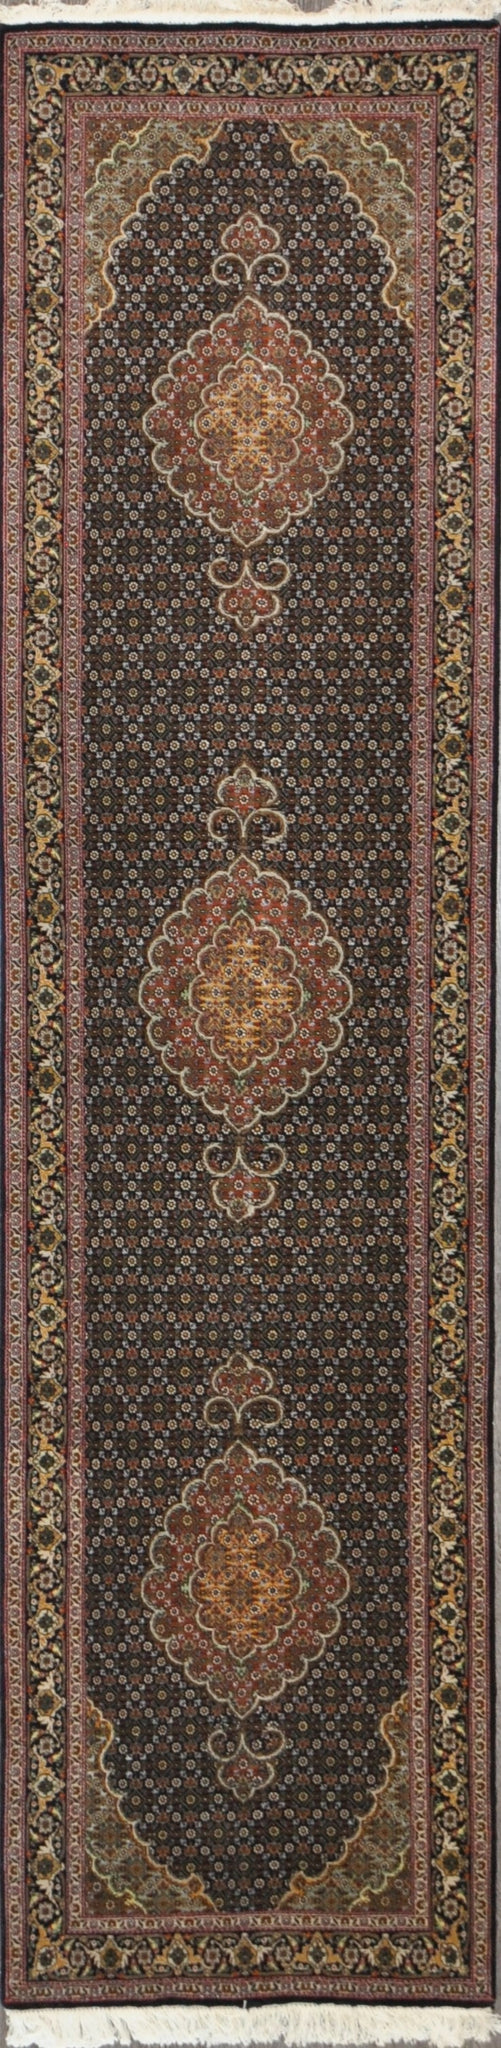 2.8x11.0 tabriz fish runner 50 Raj #47402